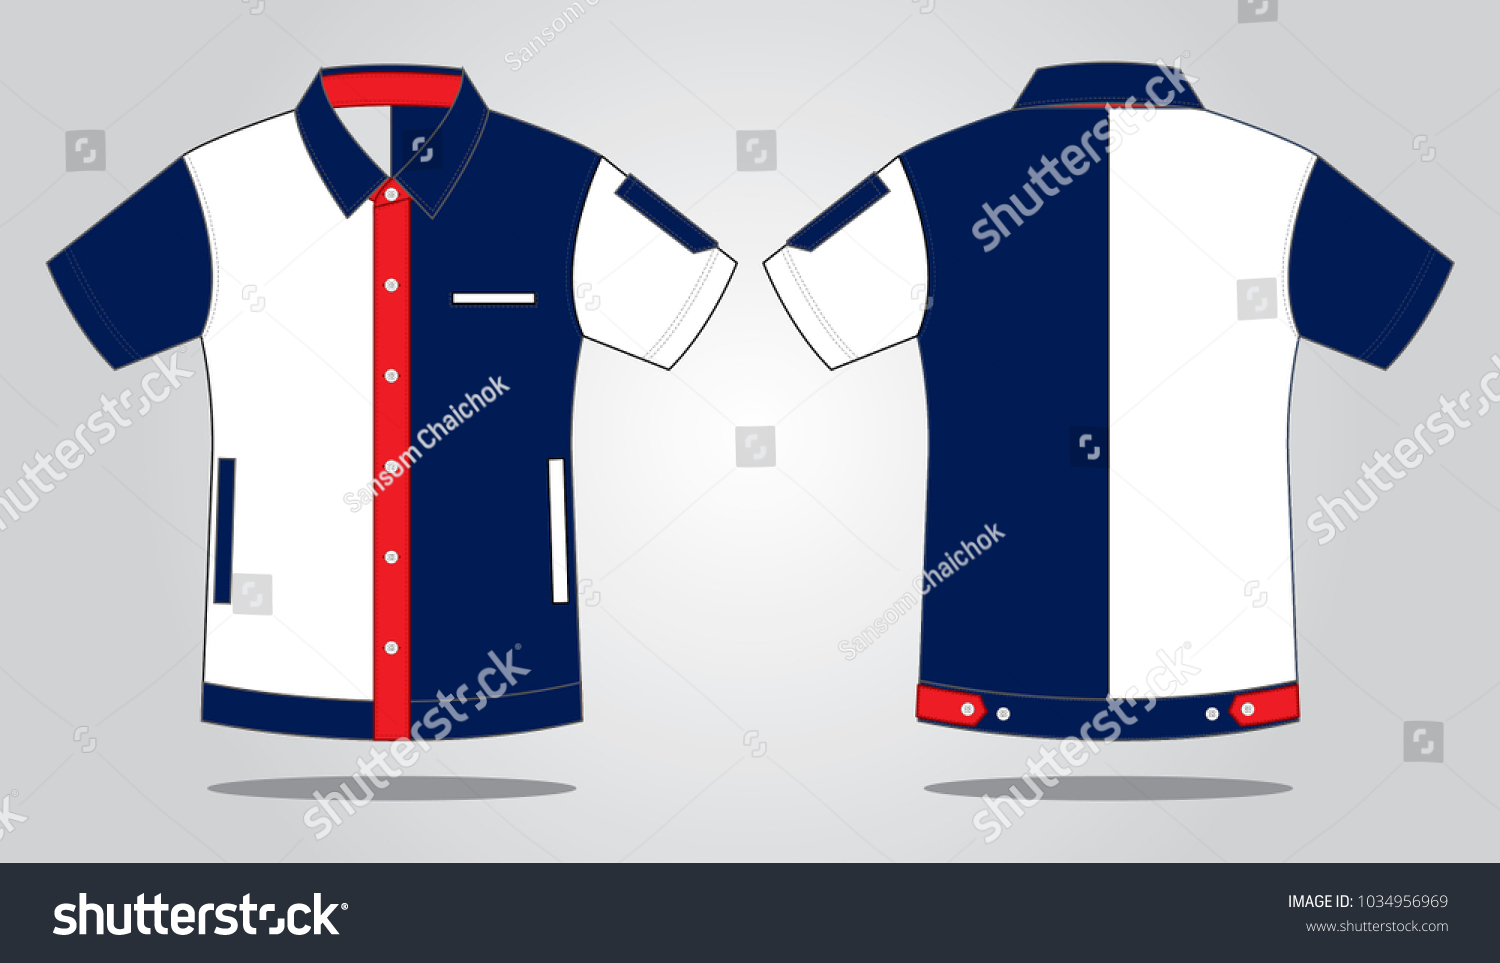 Racing Team Shirts Designs Capital Facility Management